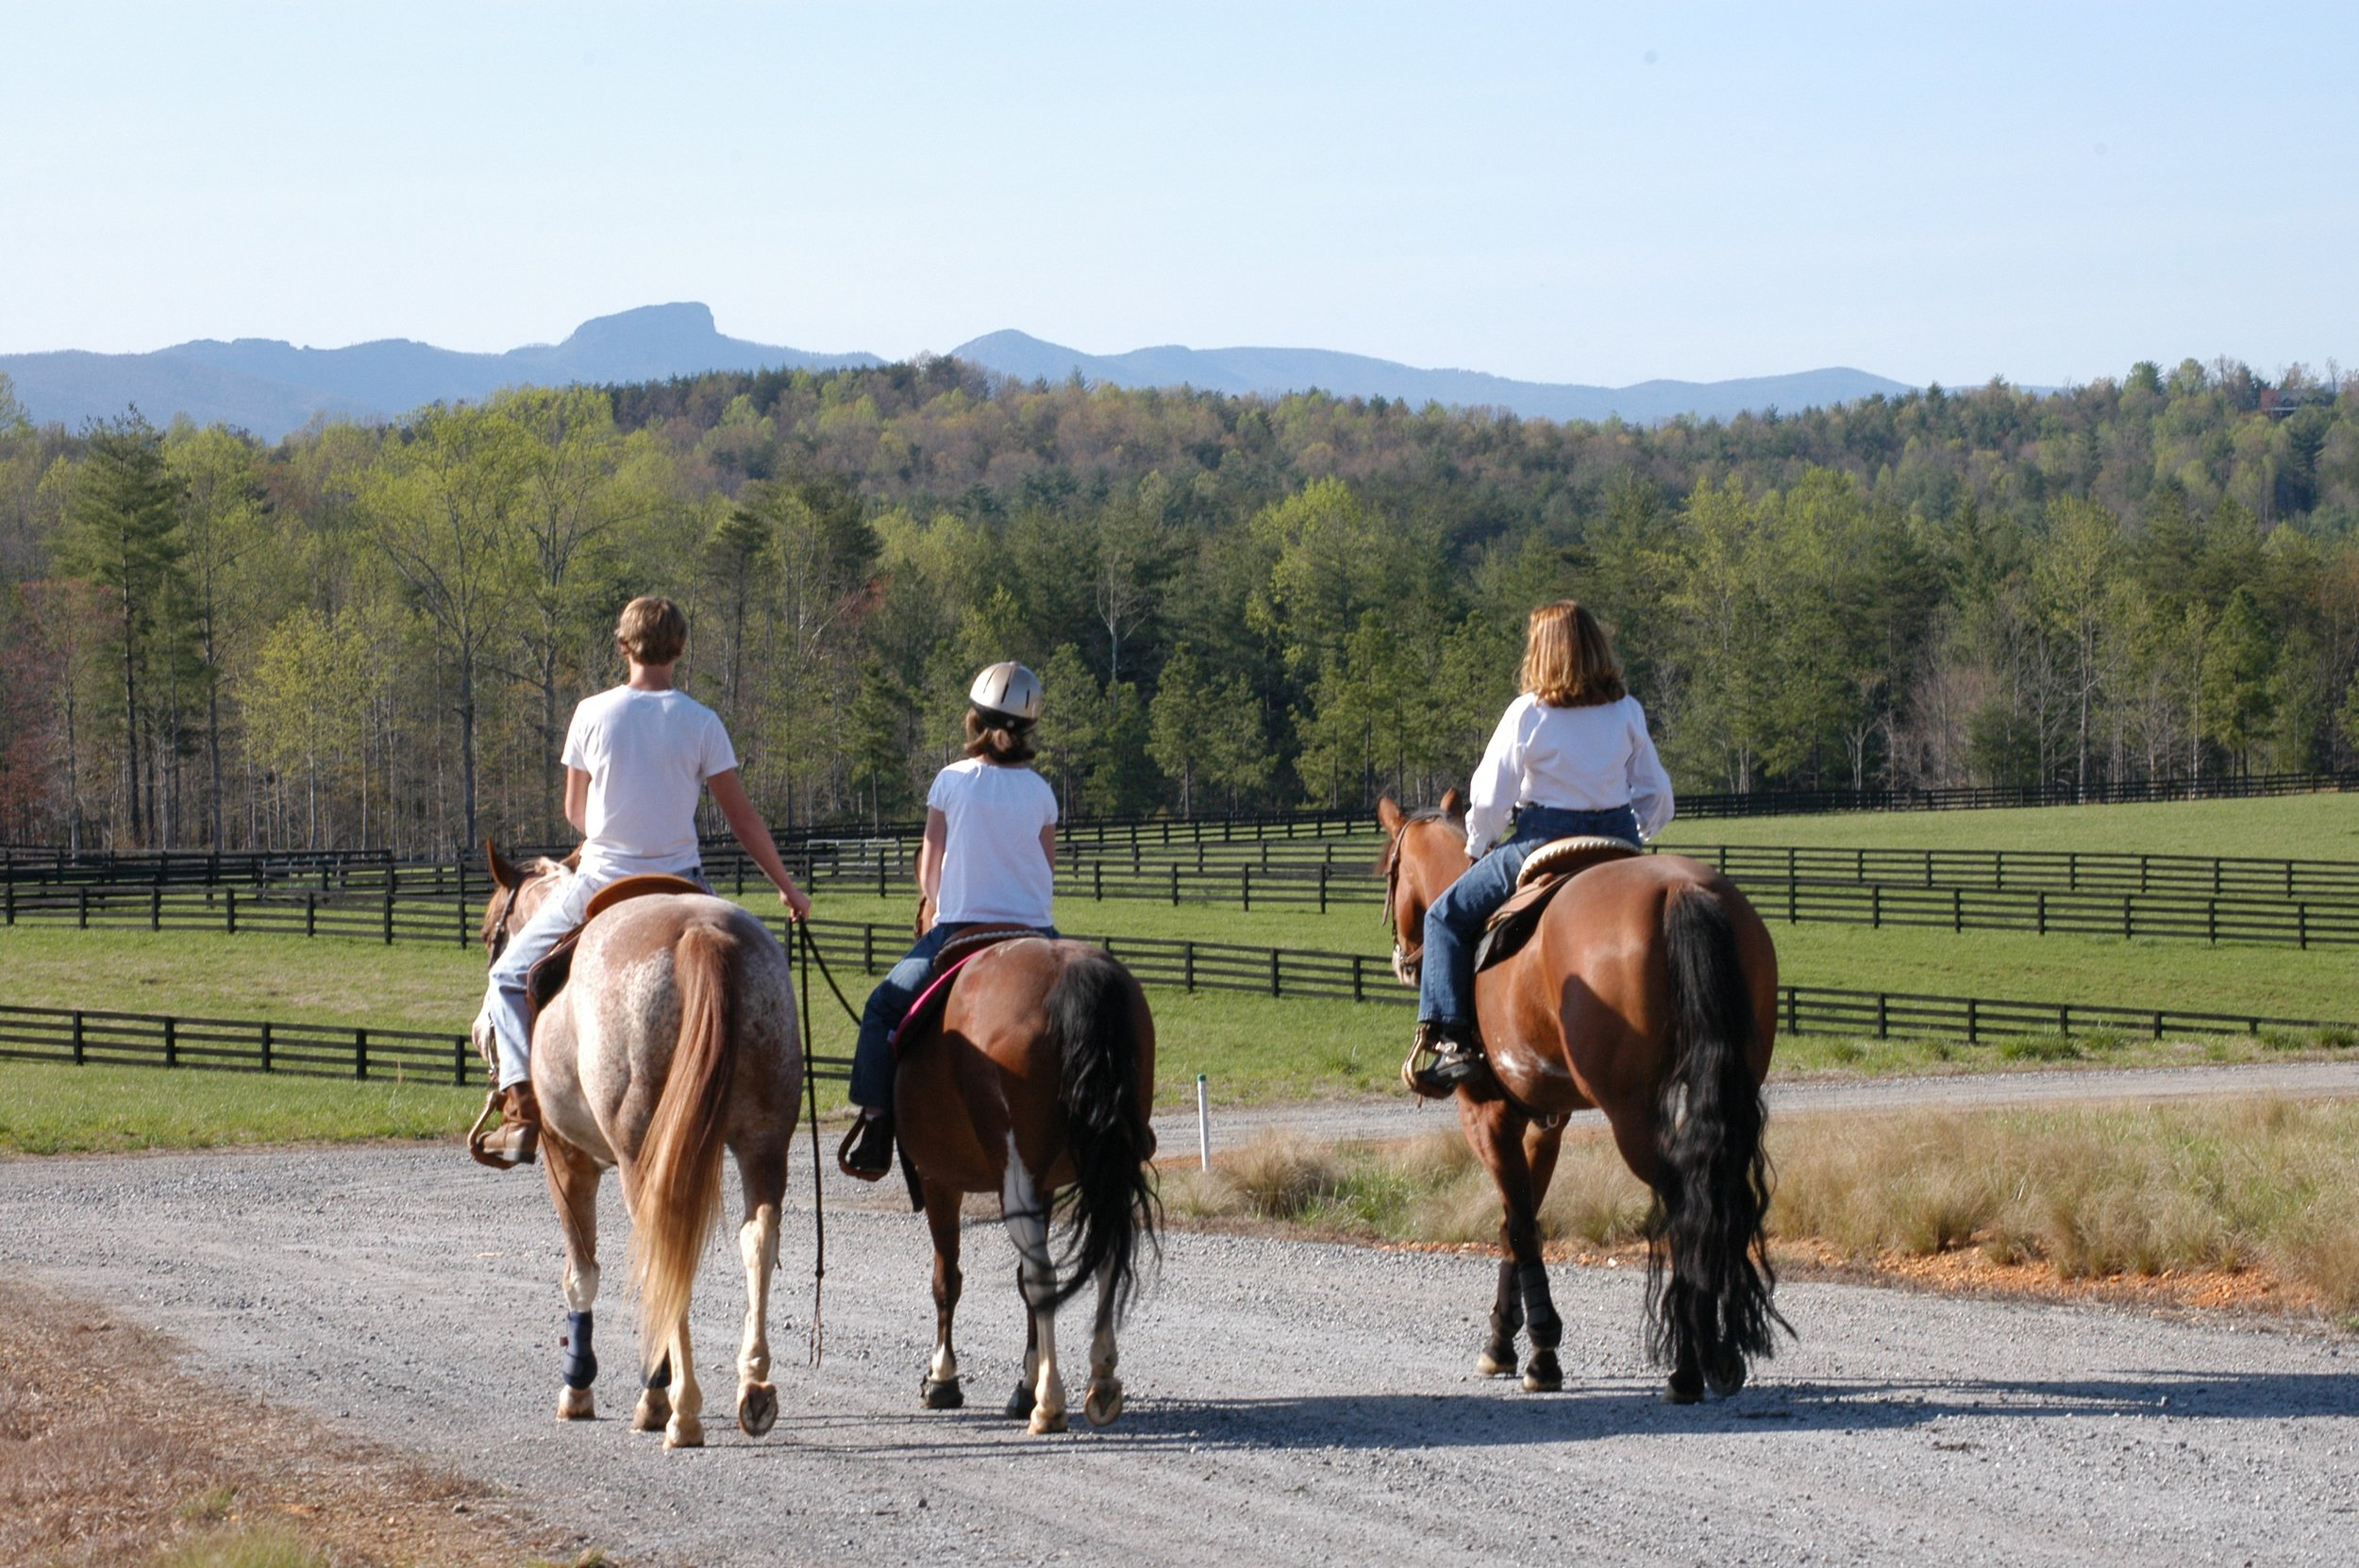 Board your horse at CRC Stables and have access to miles of horseback riding trails with mountain views.